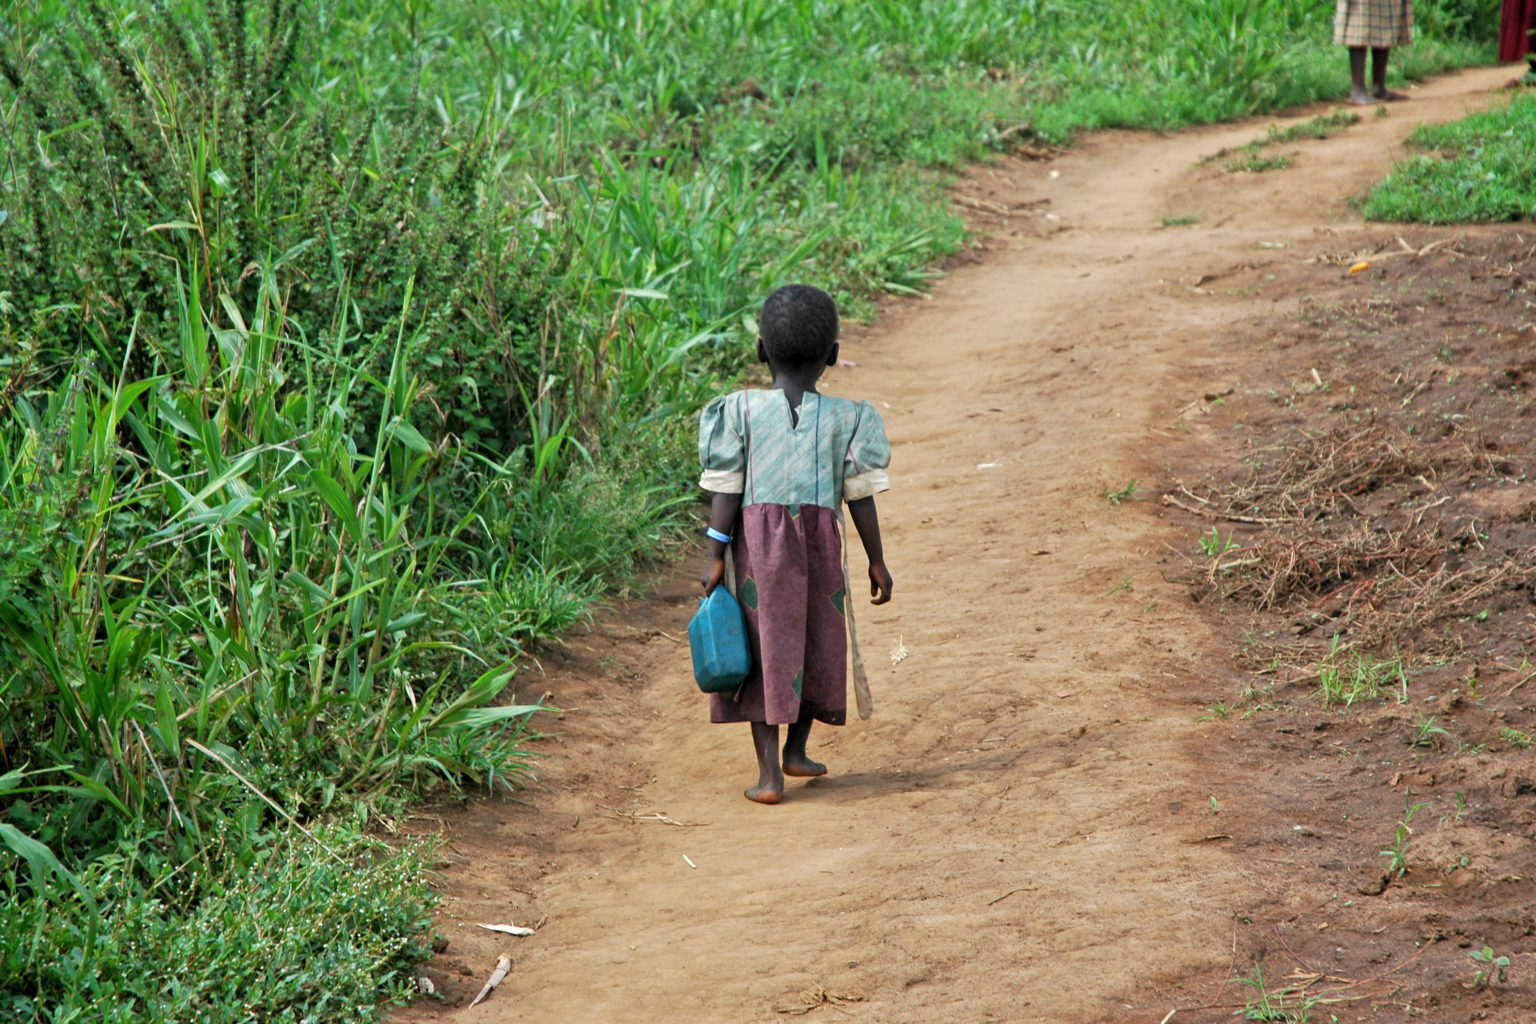 GULU UGANDA AFRICA - CIRCA MAY 2005: Unidentified little girl carries a blue jerry-can down a dirt path circa May 2005 in Uganda Africa.